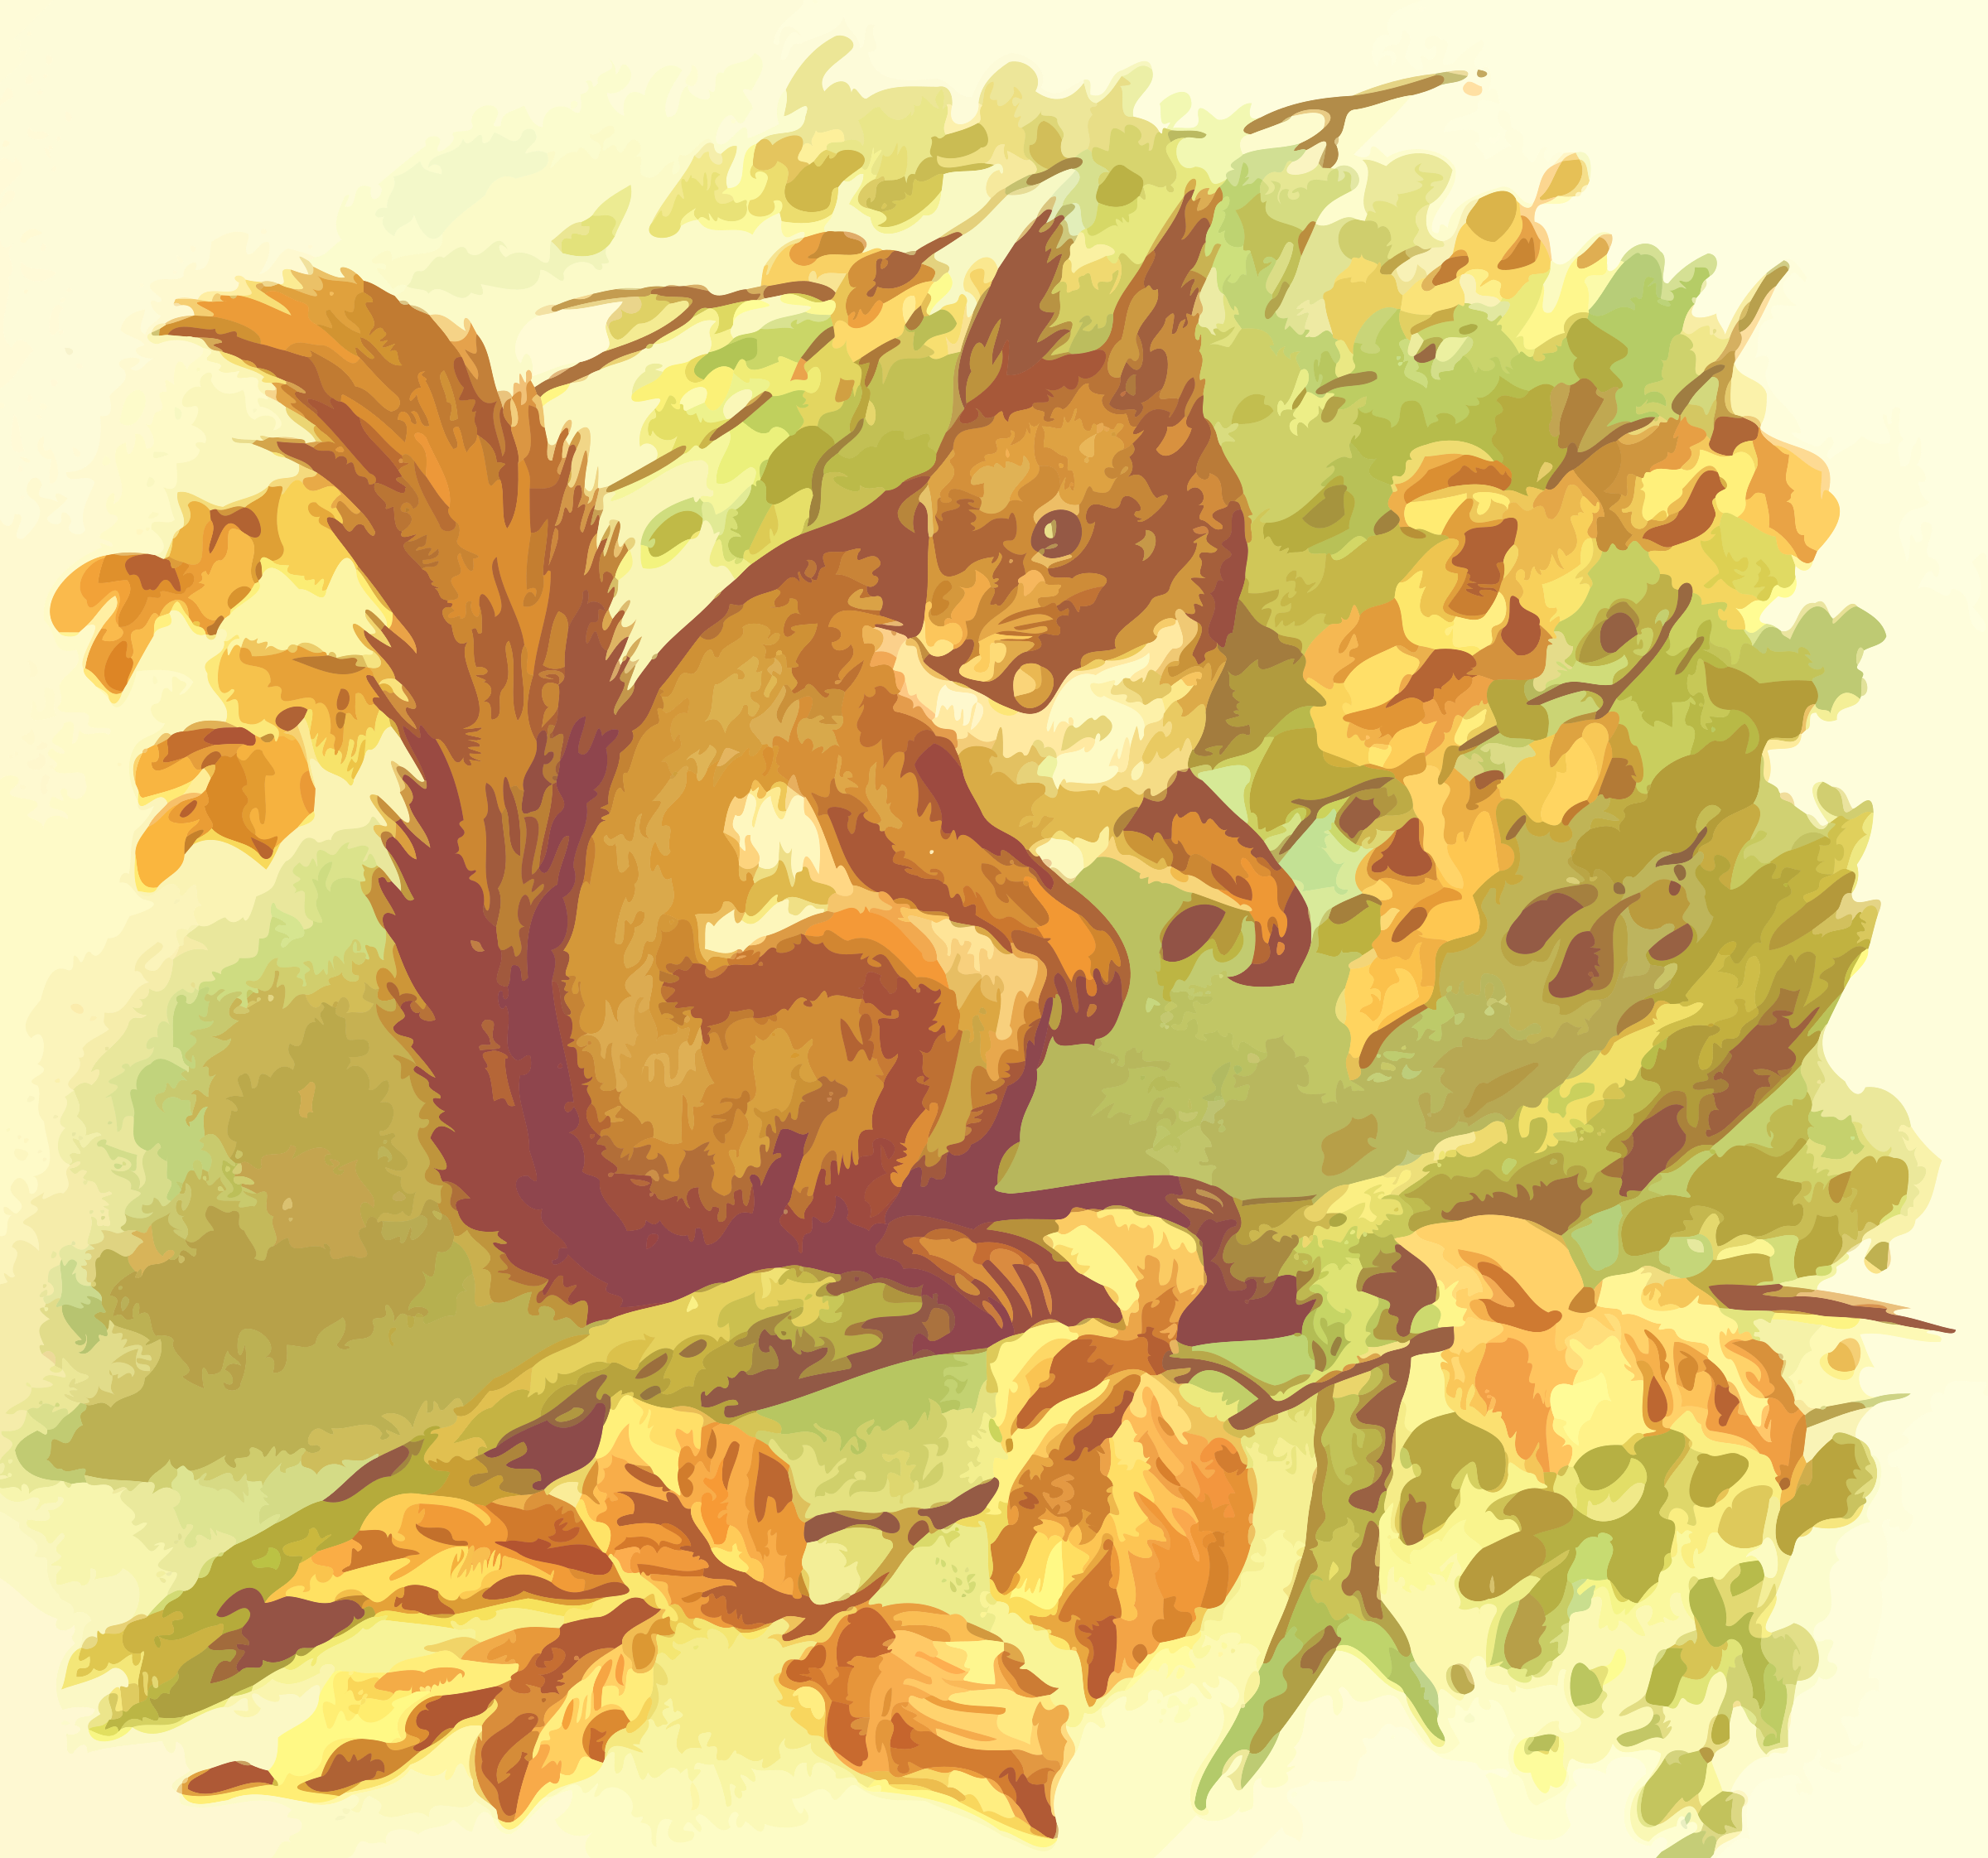 Squirrel 2 by Firkin